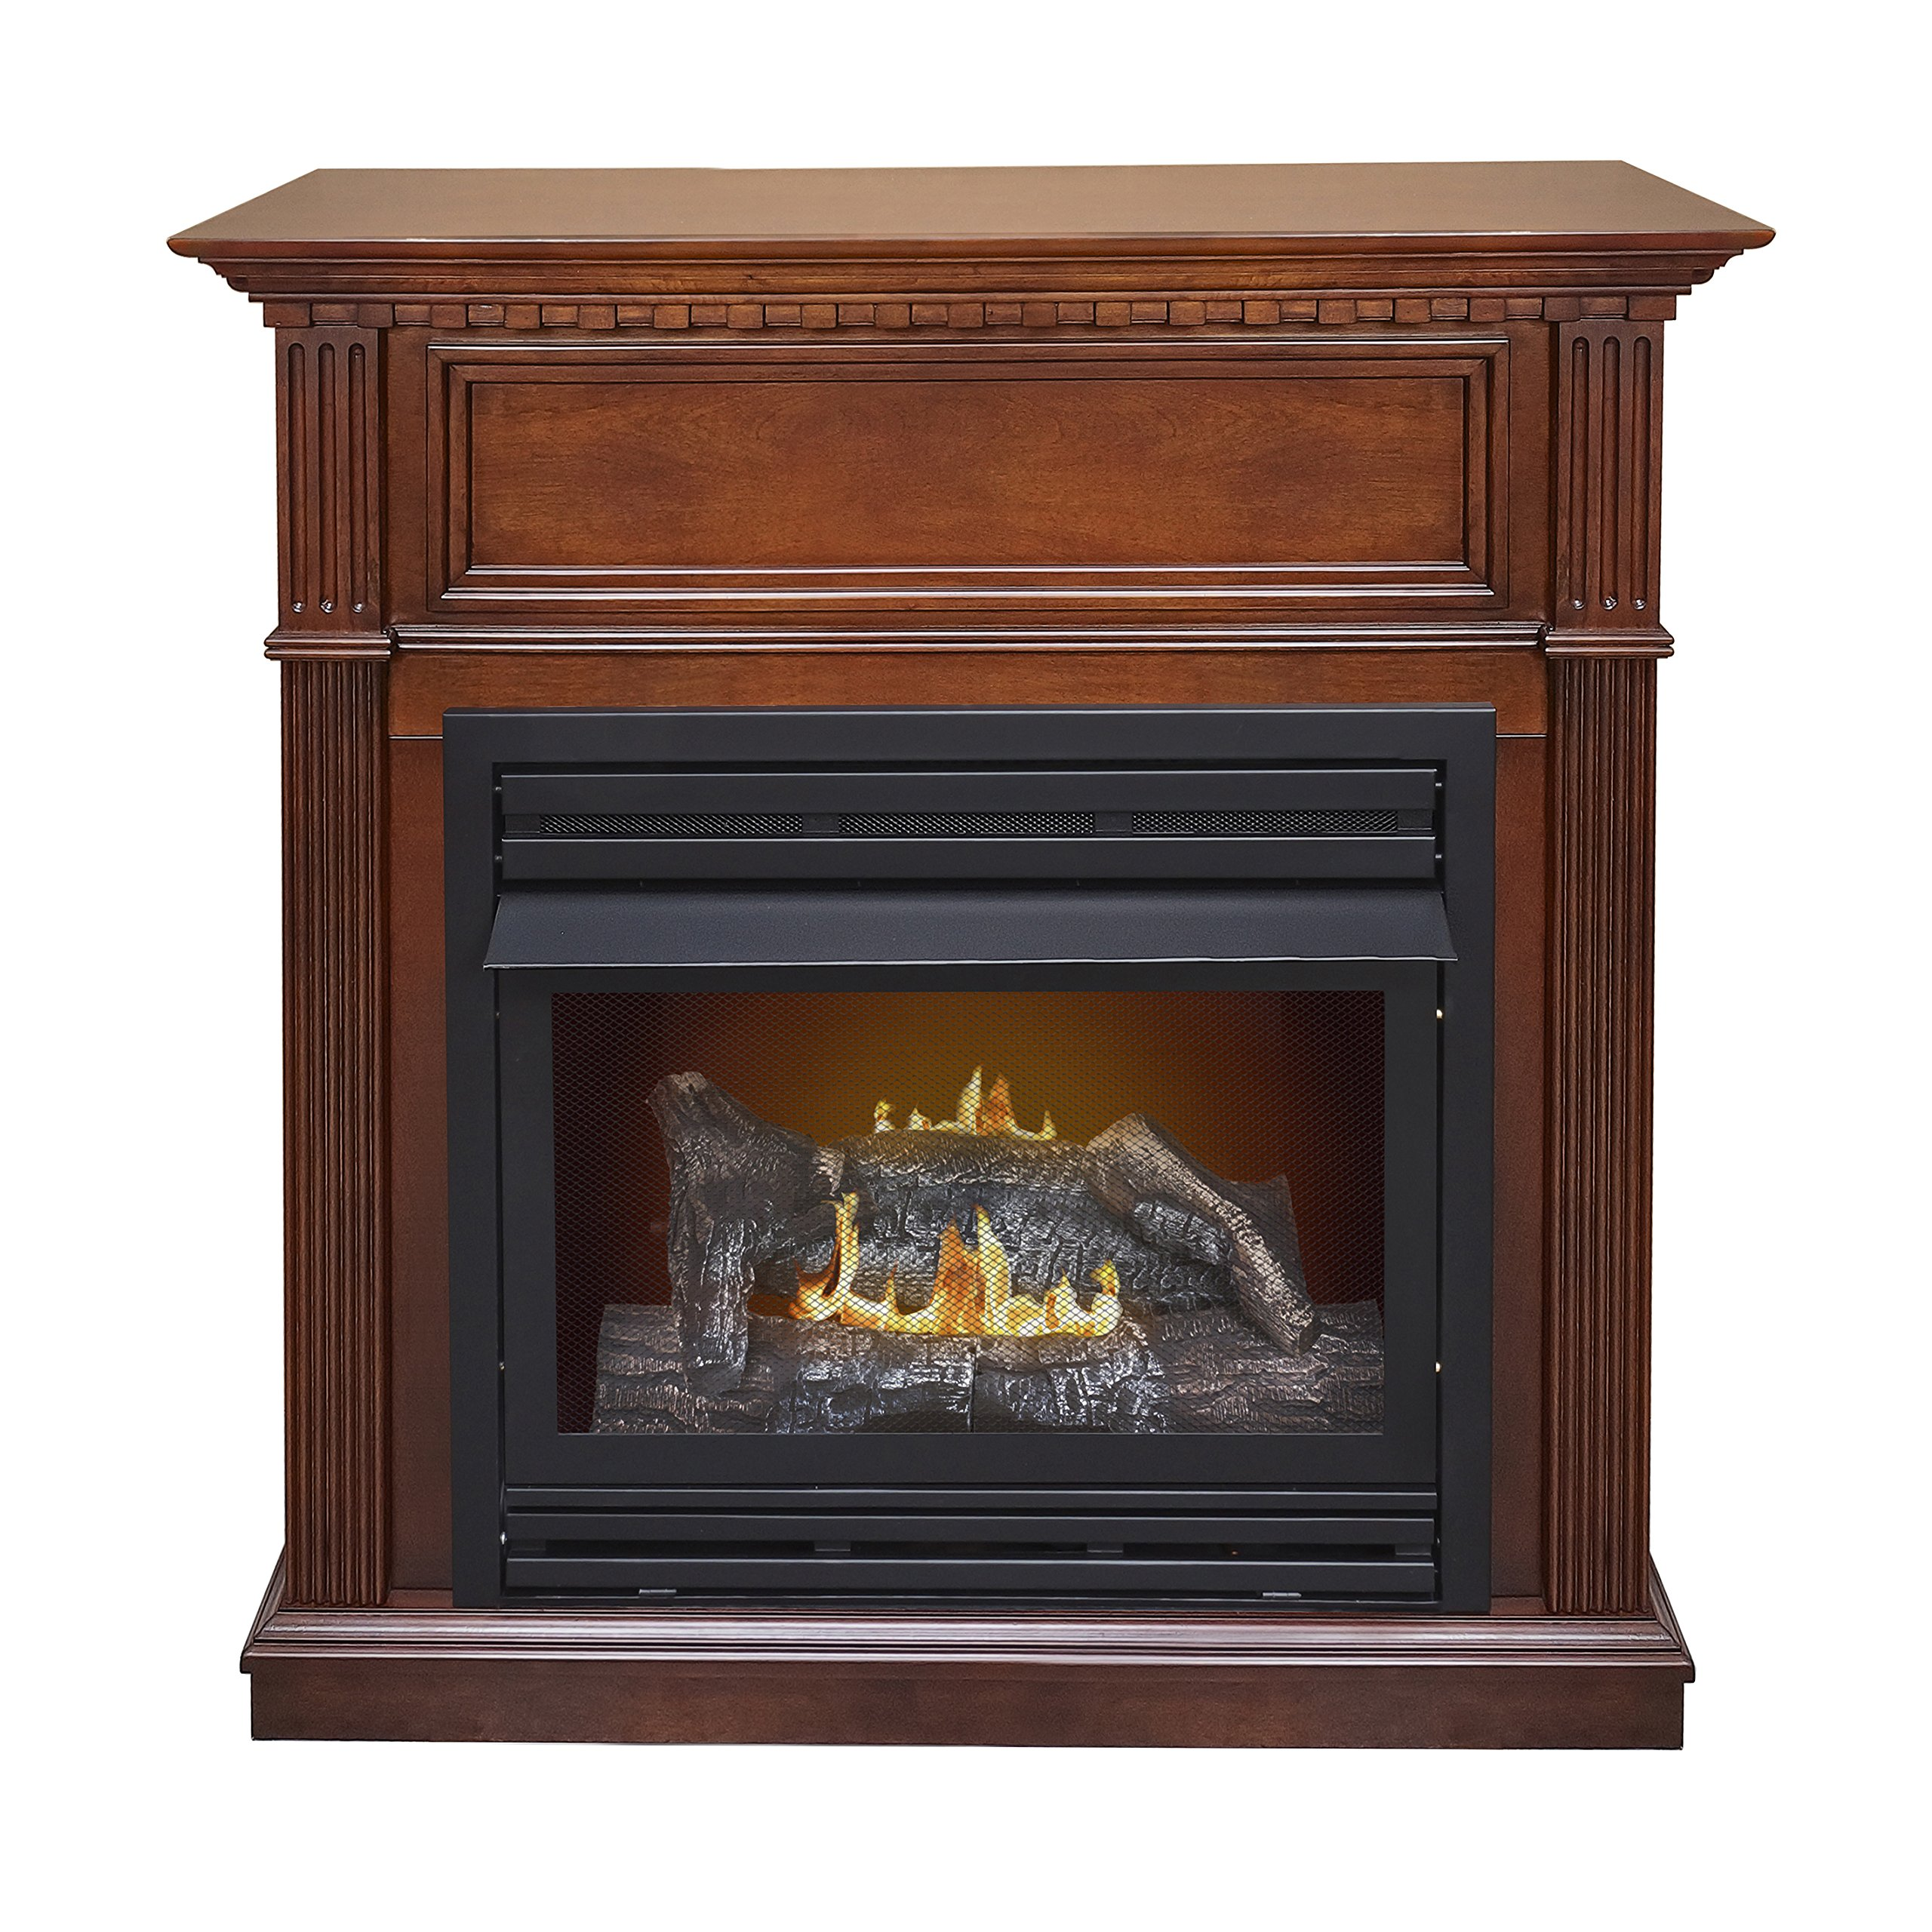 fireplace thedailygraffcom look natural awesome gas of fascinating imgid fires bedroom vent that corner ventless direct insert reviews style and wood